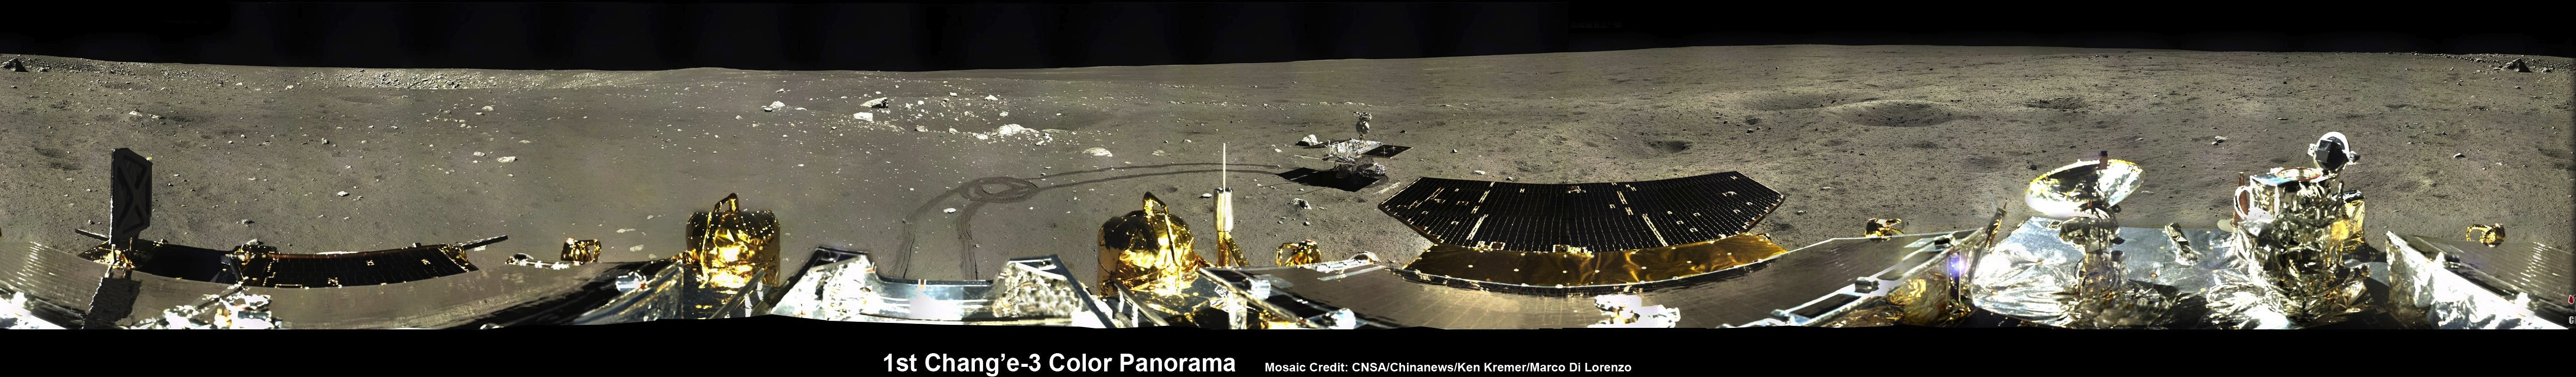 Stunning Panoramas Put China's Moon Rover and Lander in Lunar Spotlight (Photos)